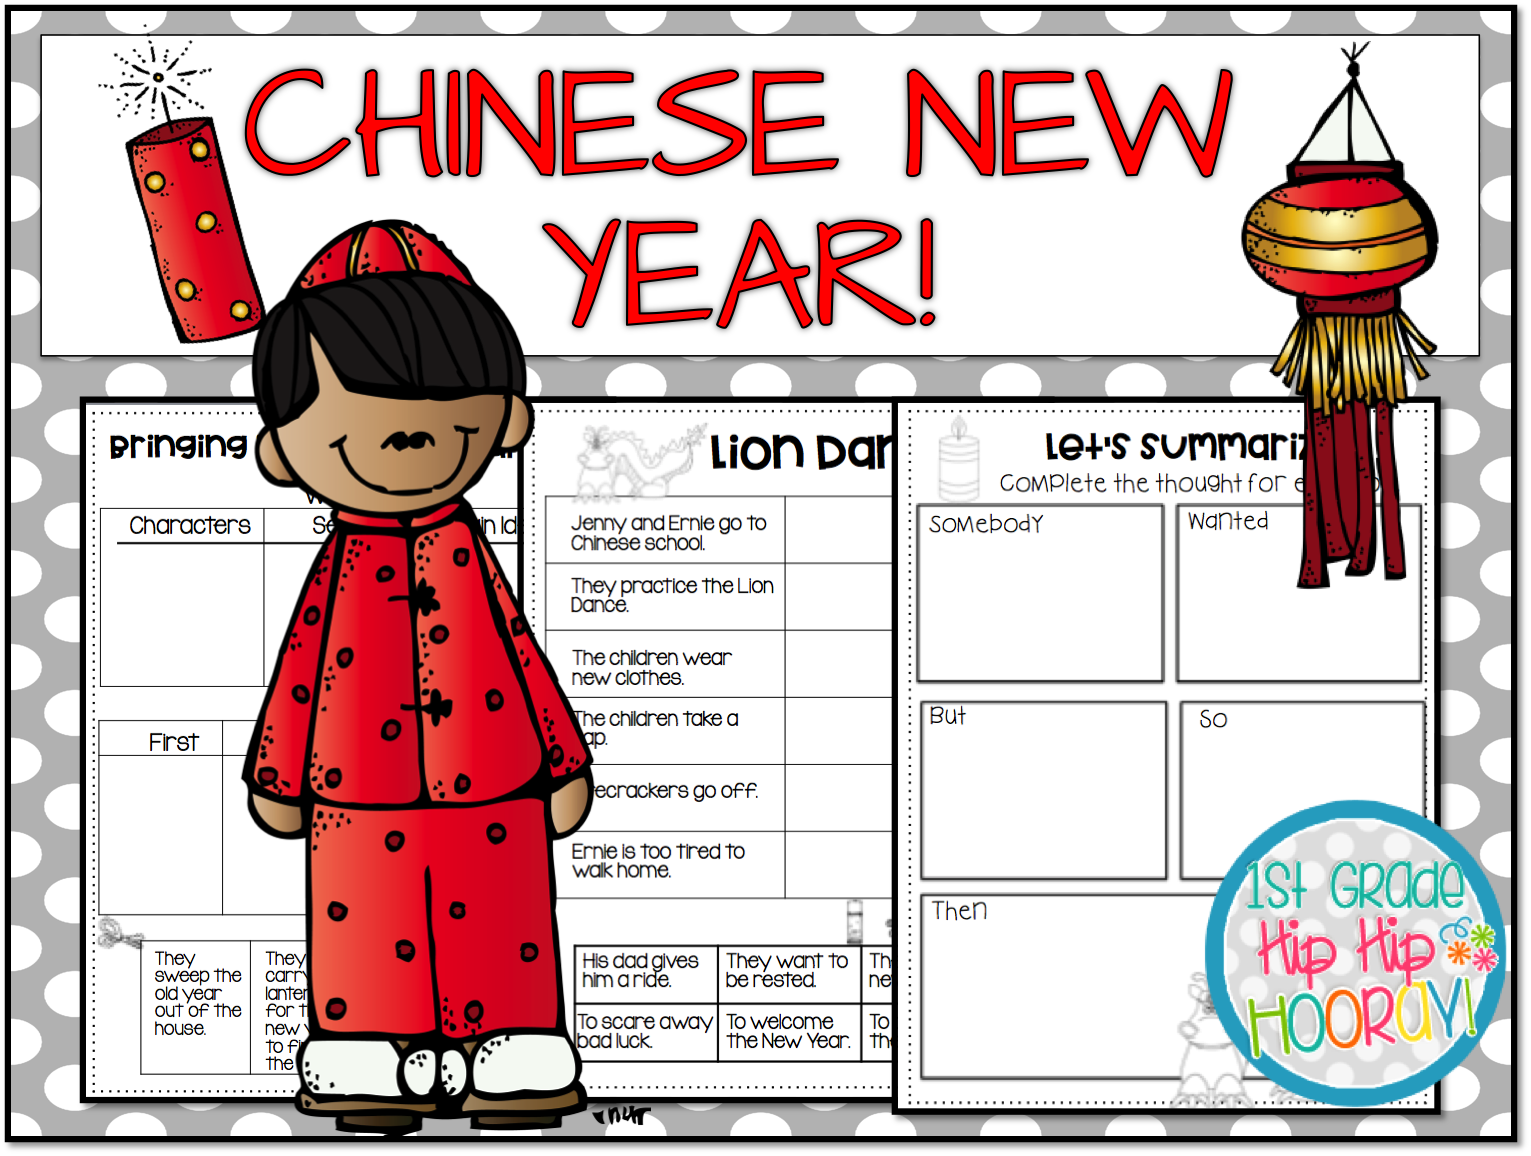 1st Grade Hip Hip Hooray Chinese New Year February 16th